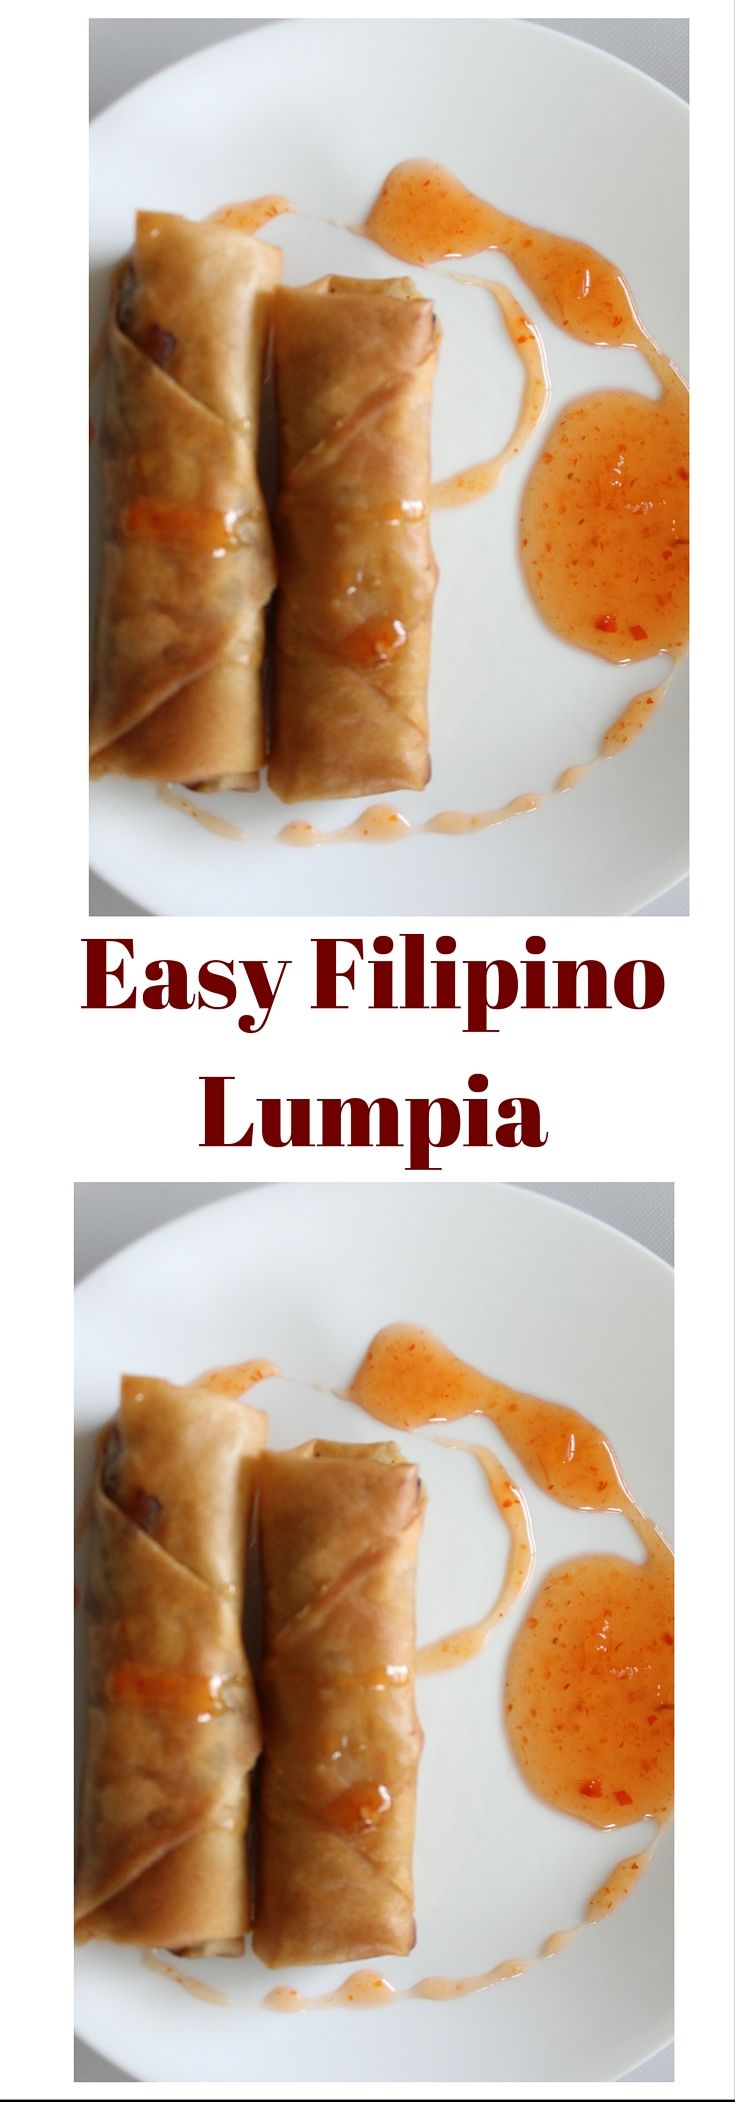 THIS FILIPINO LUMPIA RECIPE IS EASY TO MAKE. TASTY AND DELICIOUS. EASY FILIPINO LUMPIA RECIPE